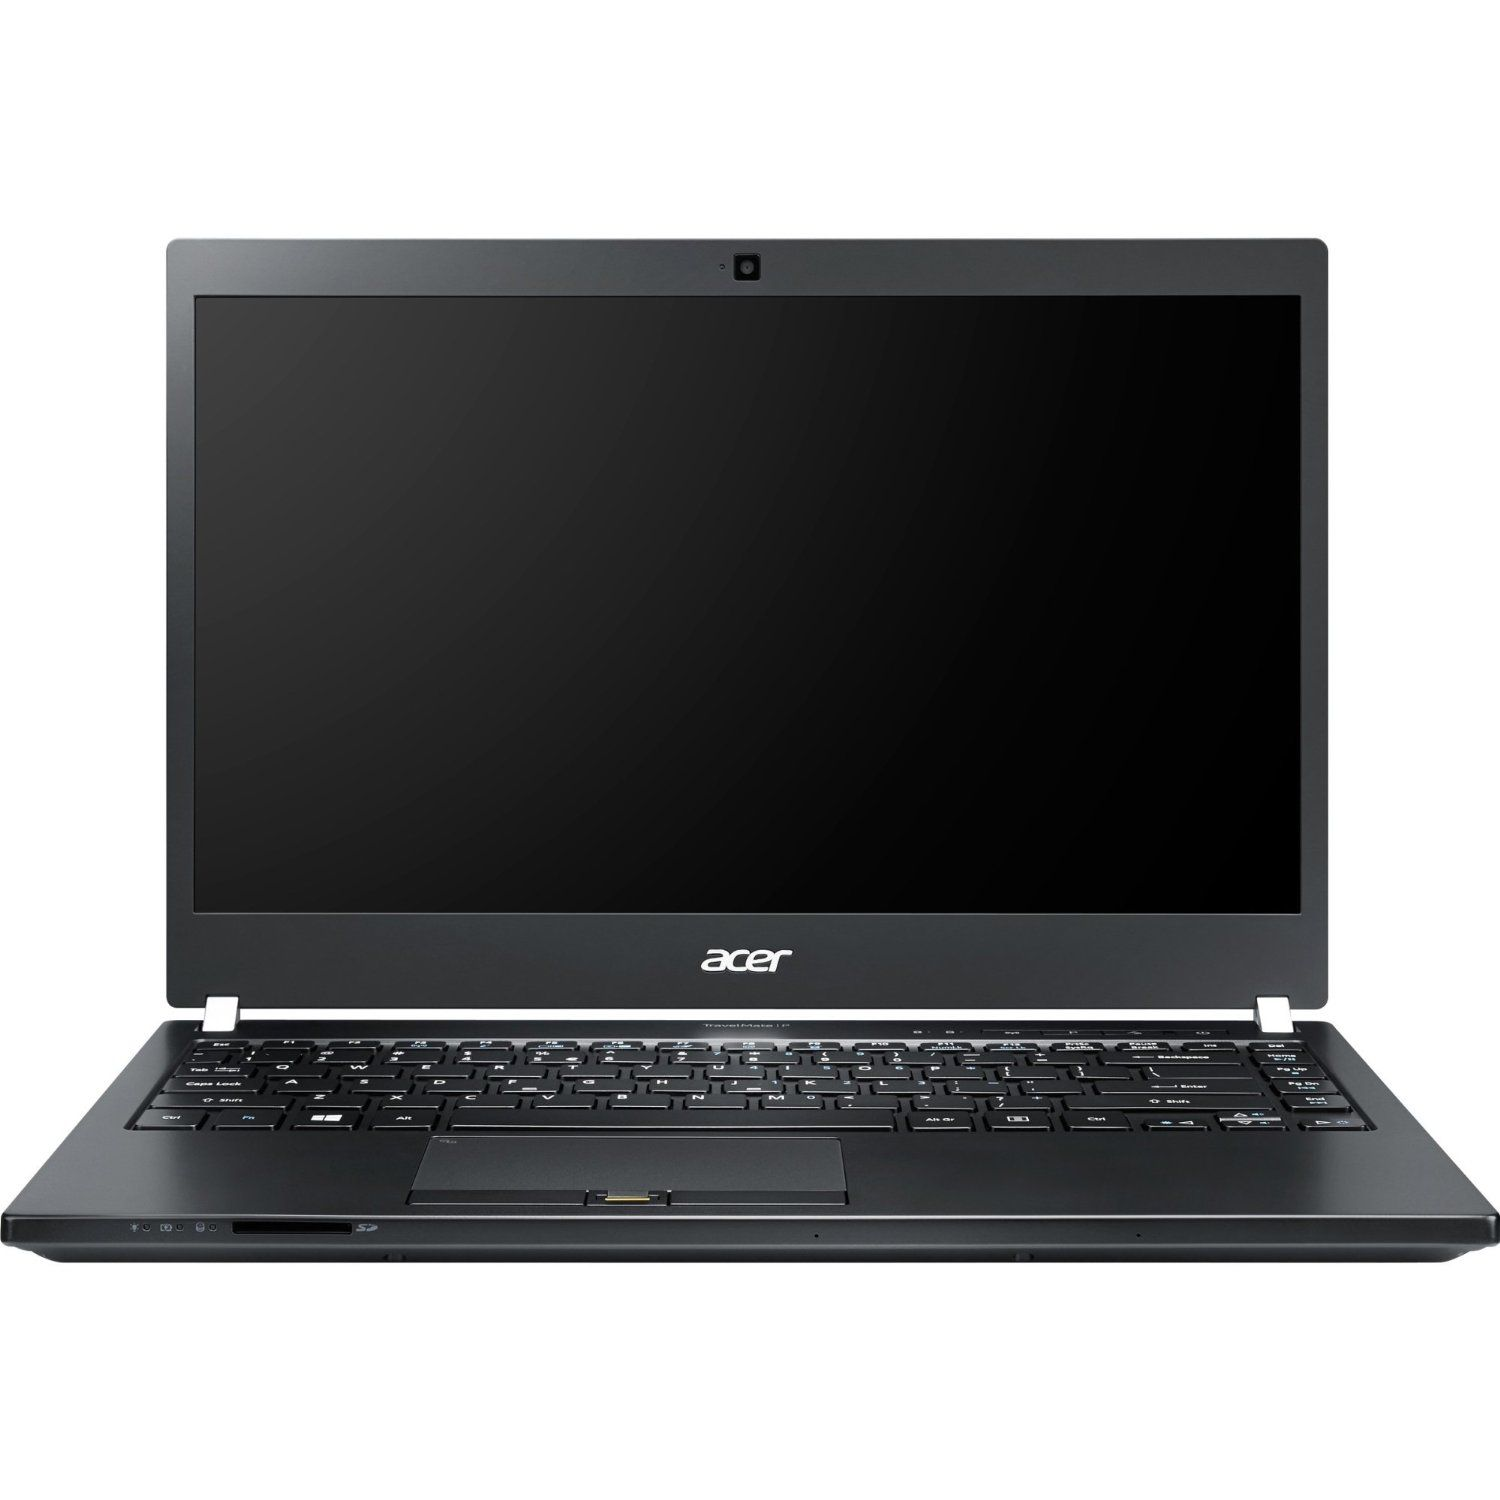 Laptop,Notebook reviews, specifications, price comparisons